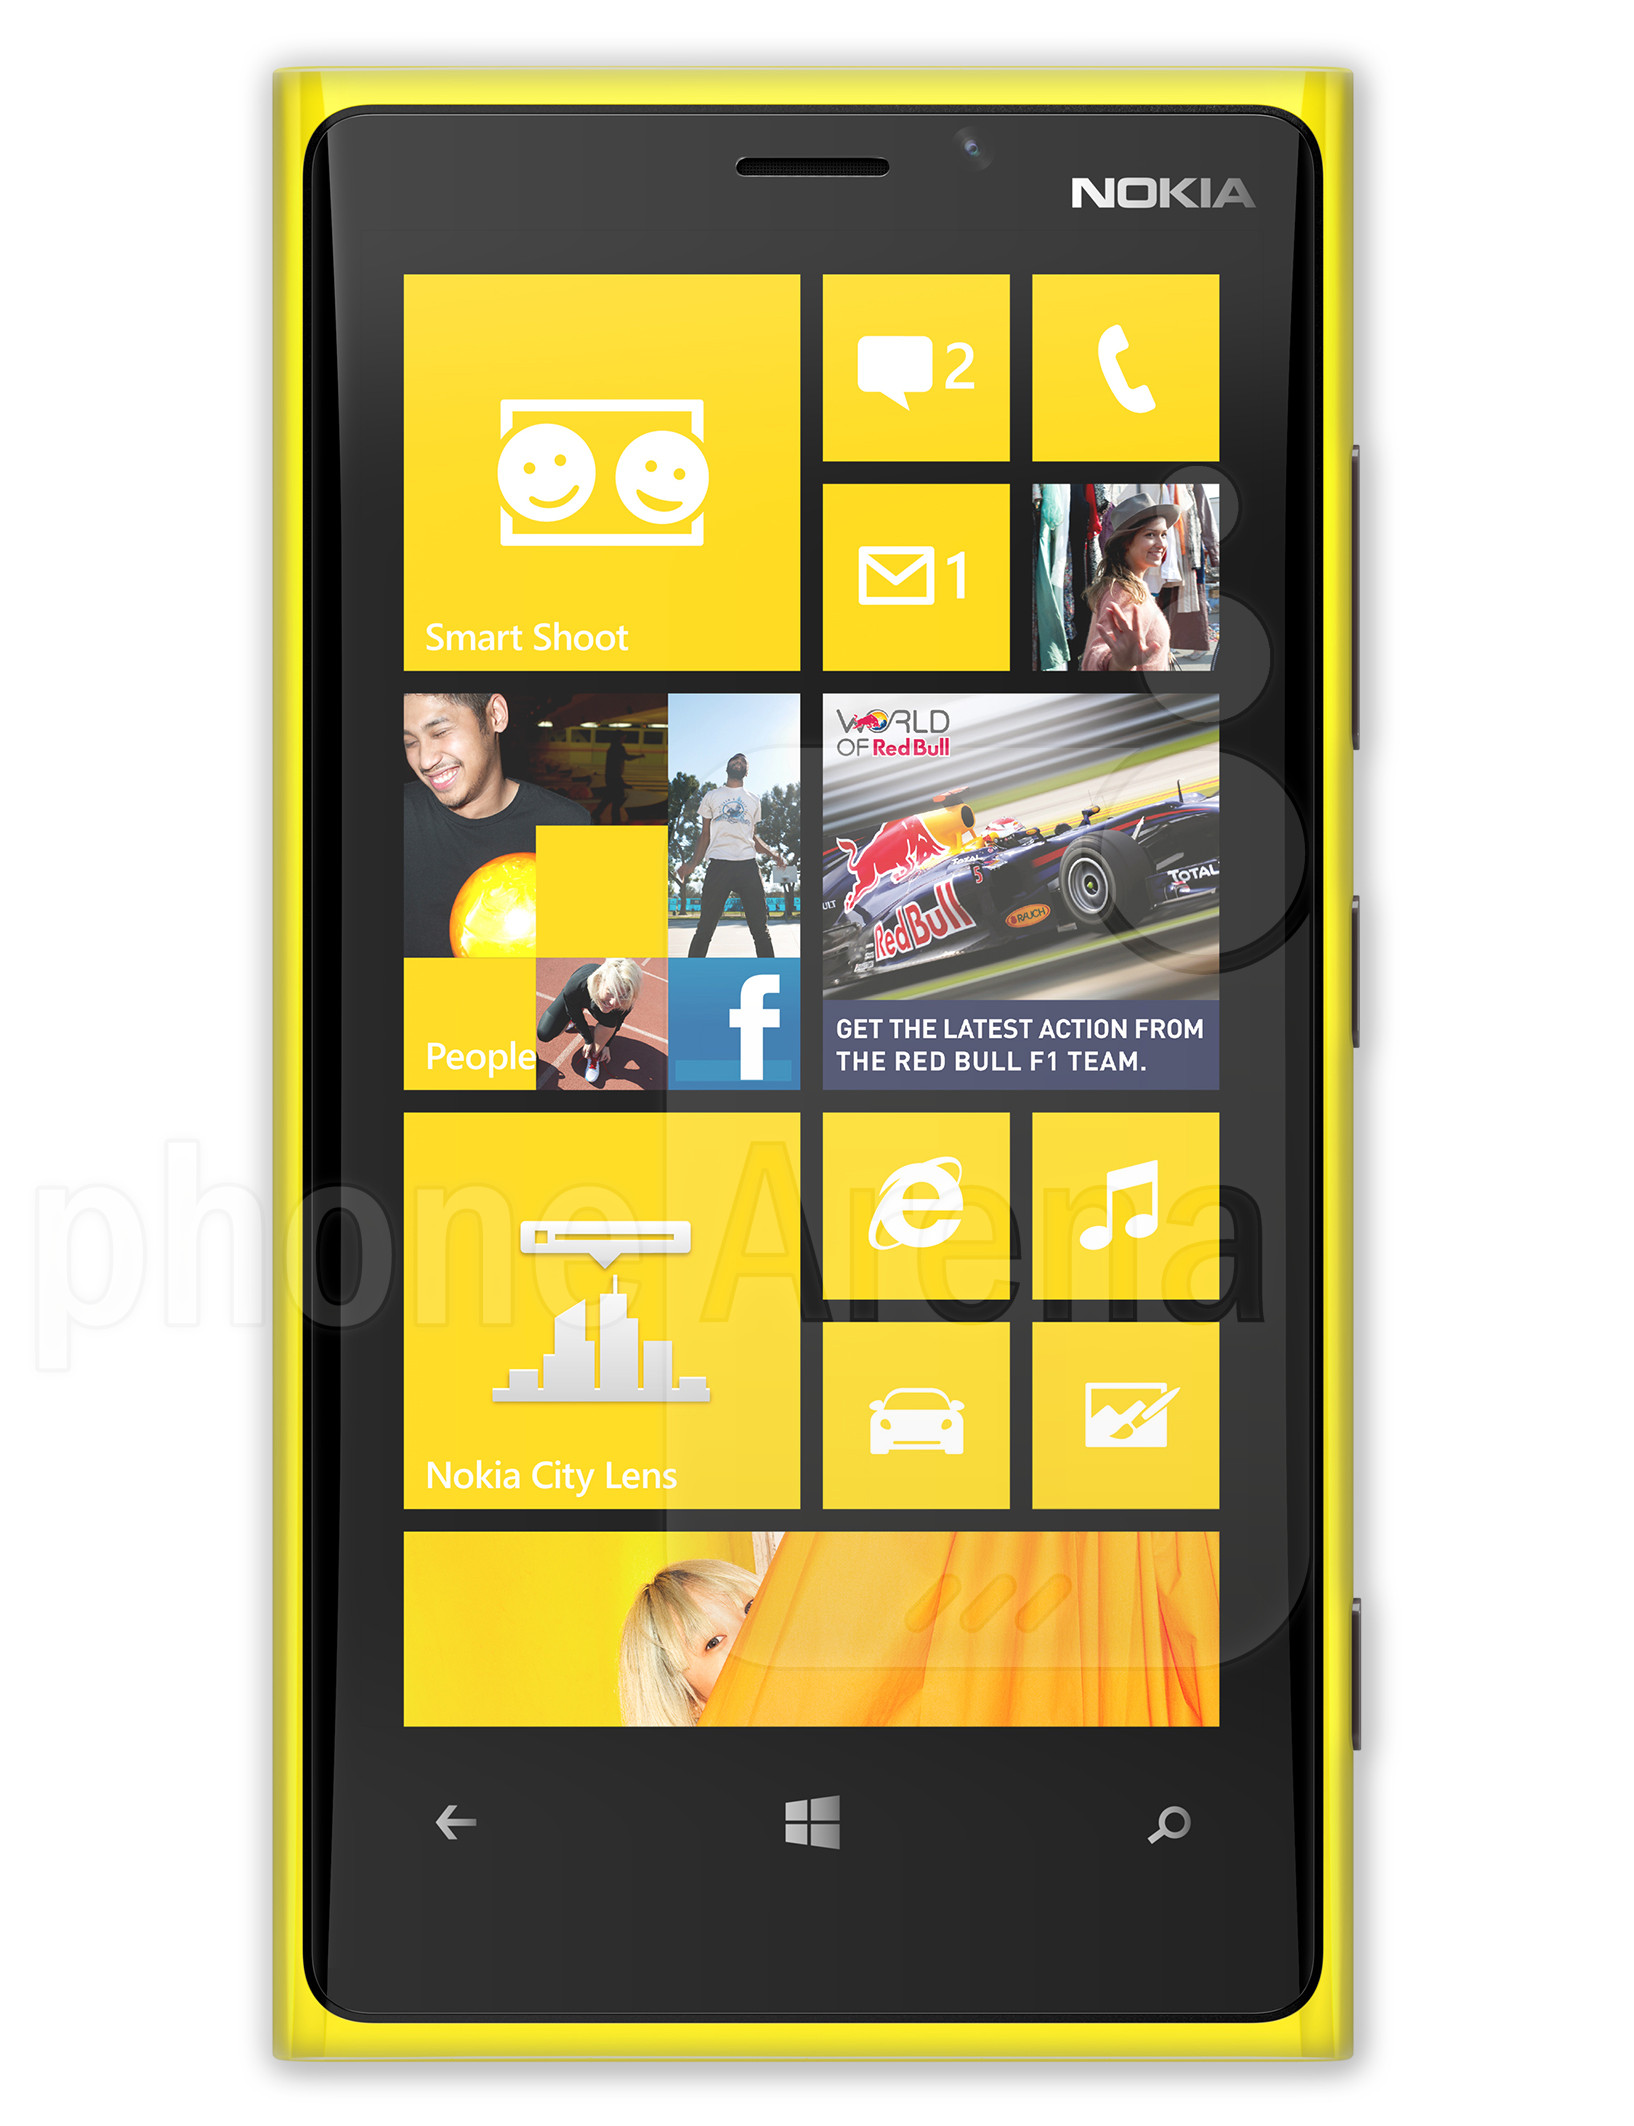 Nokia Lumia 920 ve 800 hard reset